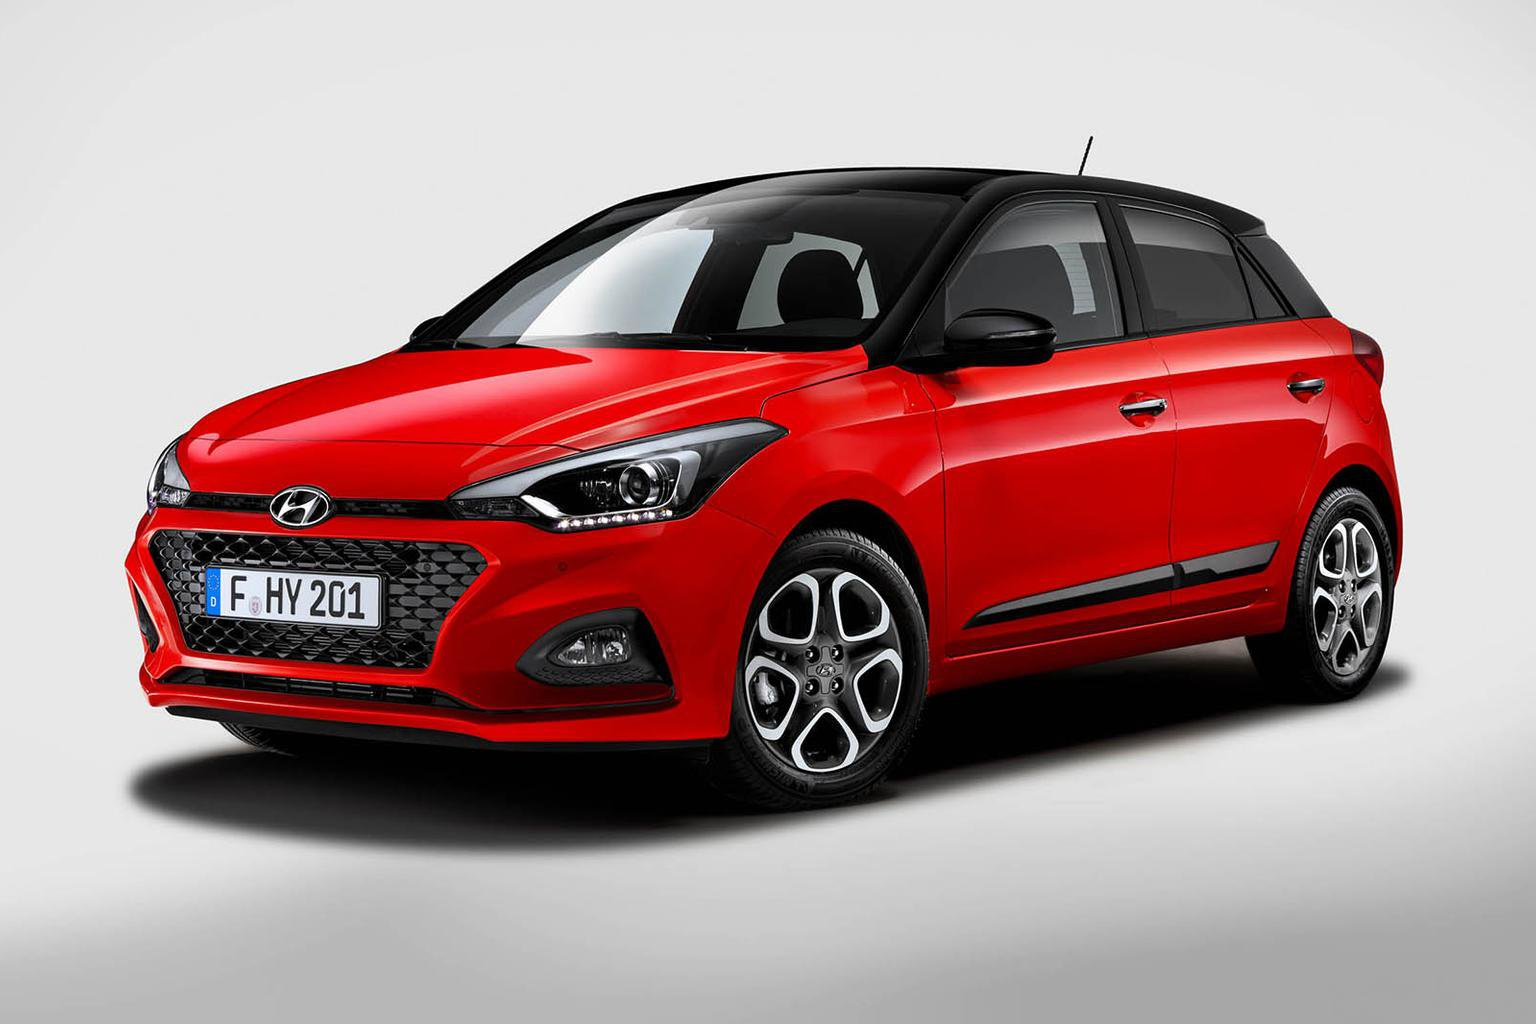 2018 Hyundai i20 – price, specs and release date